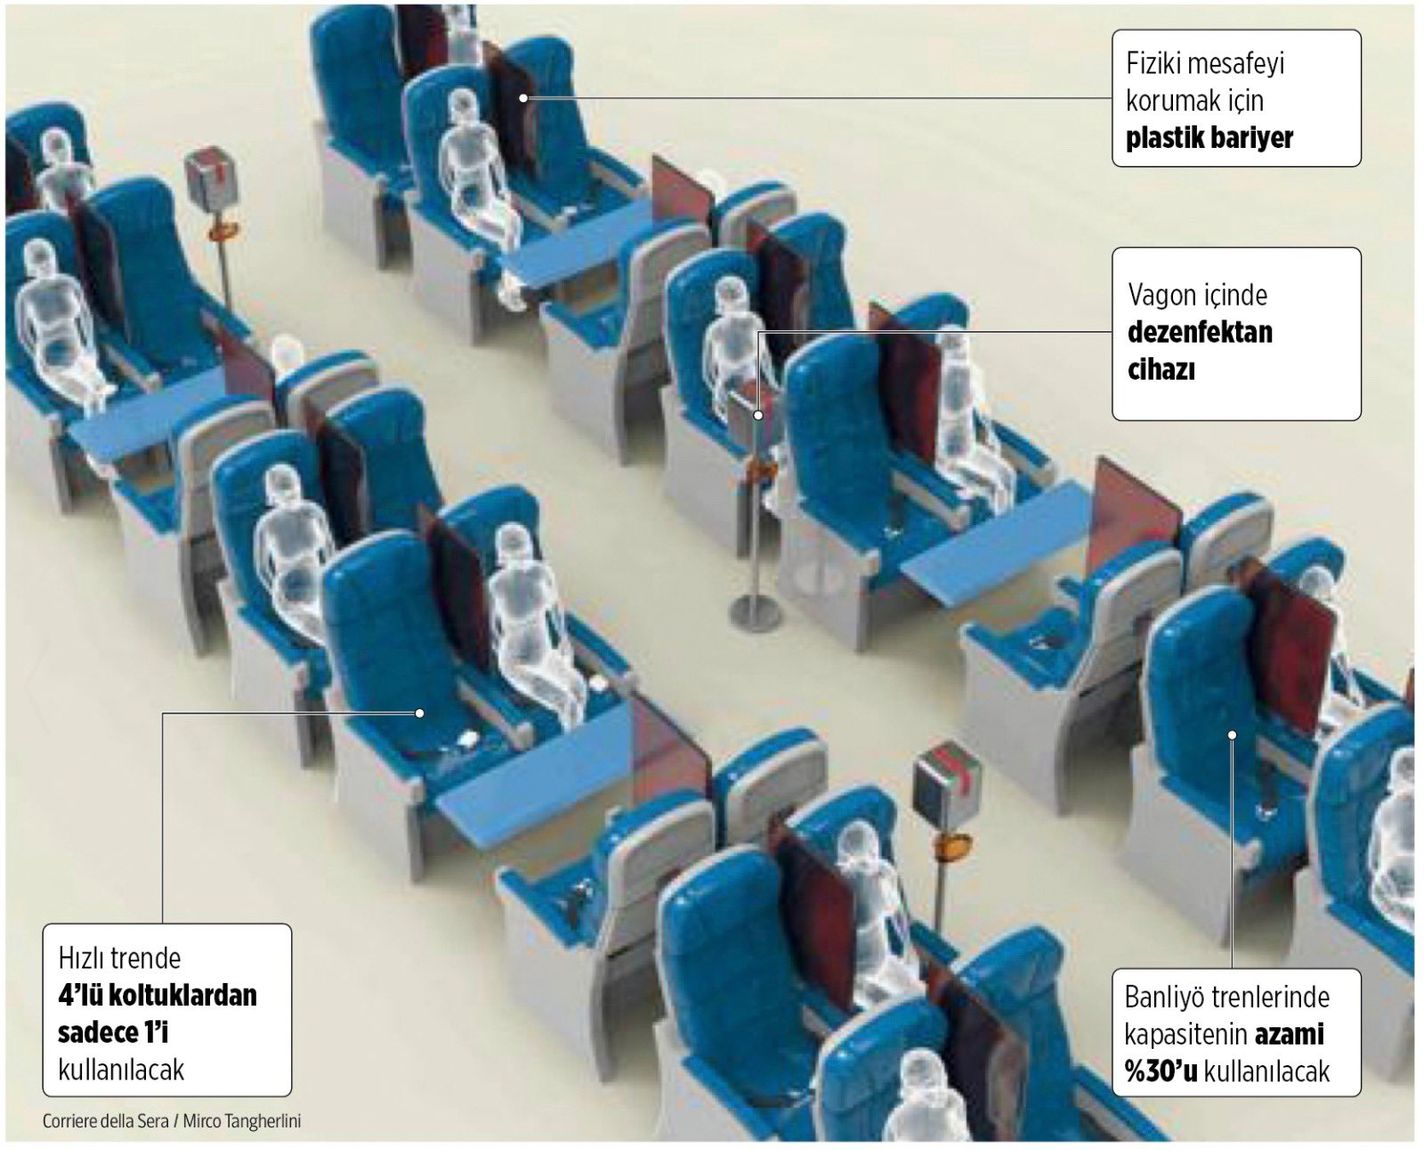 Seating Arrangement in Passenger Trains After Coronavirus in Italy